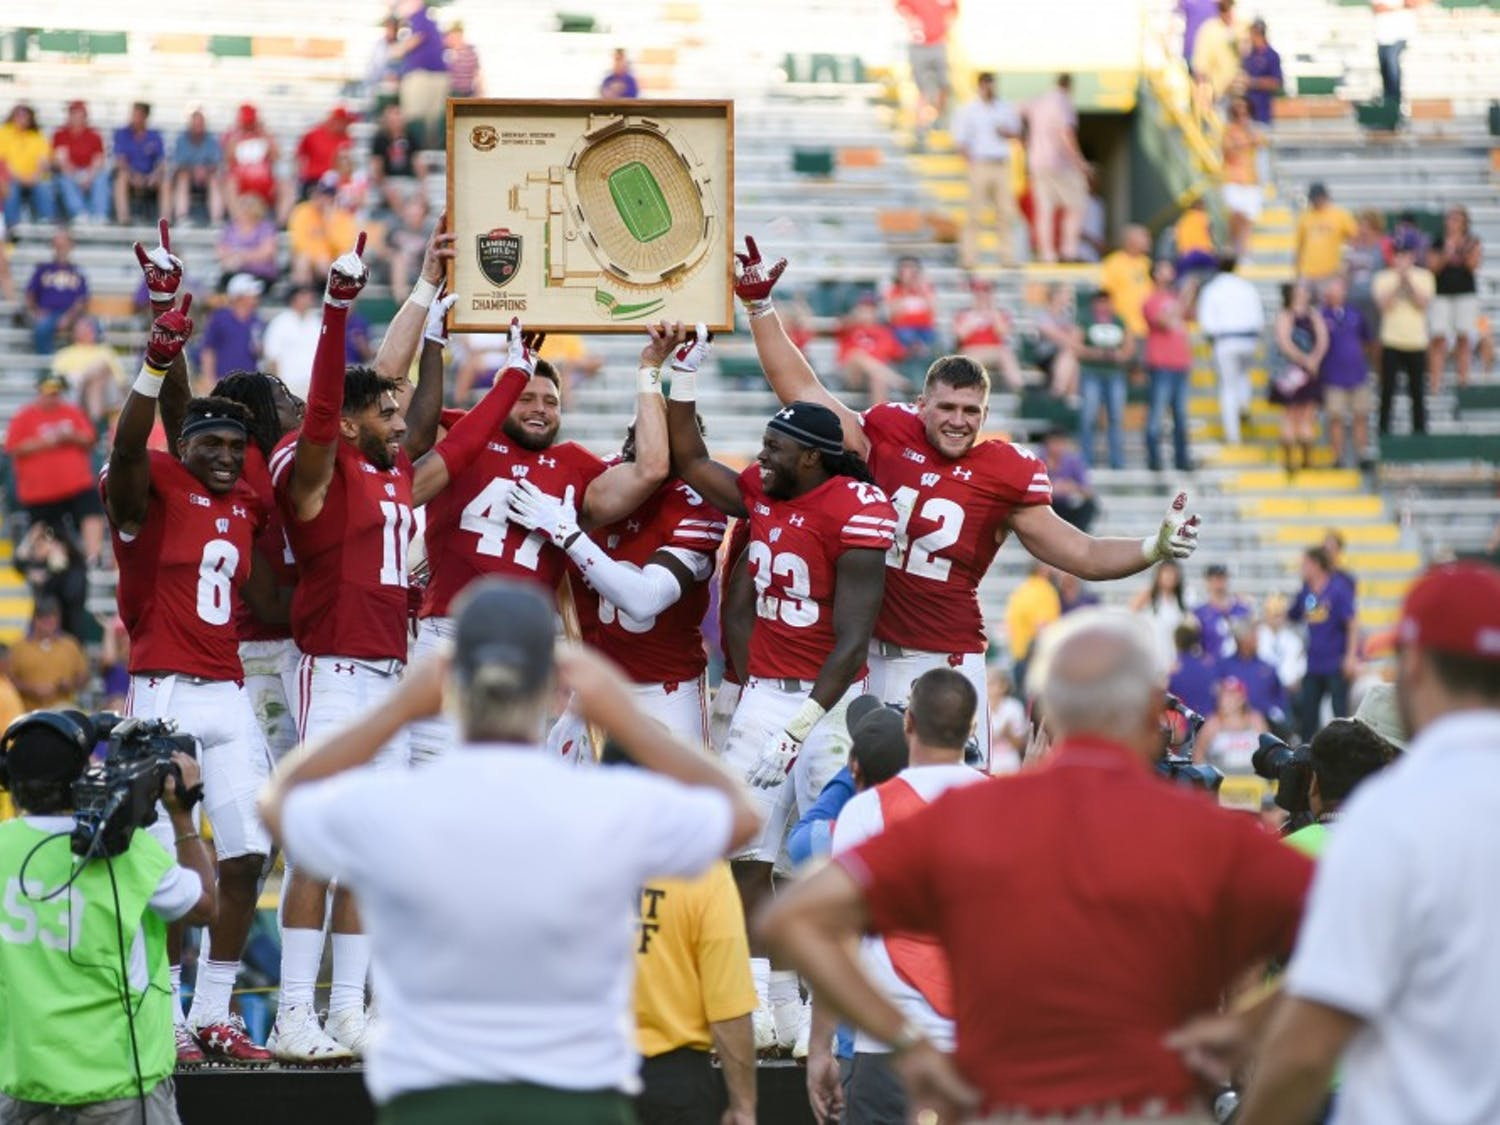 The Badgers defeated LSU at the long awaited season opener at Lambeau Field in Green Bay, WI. Photos by Jessi Schoville